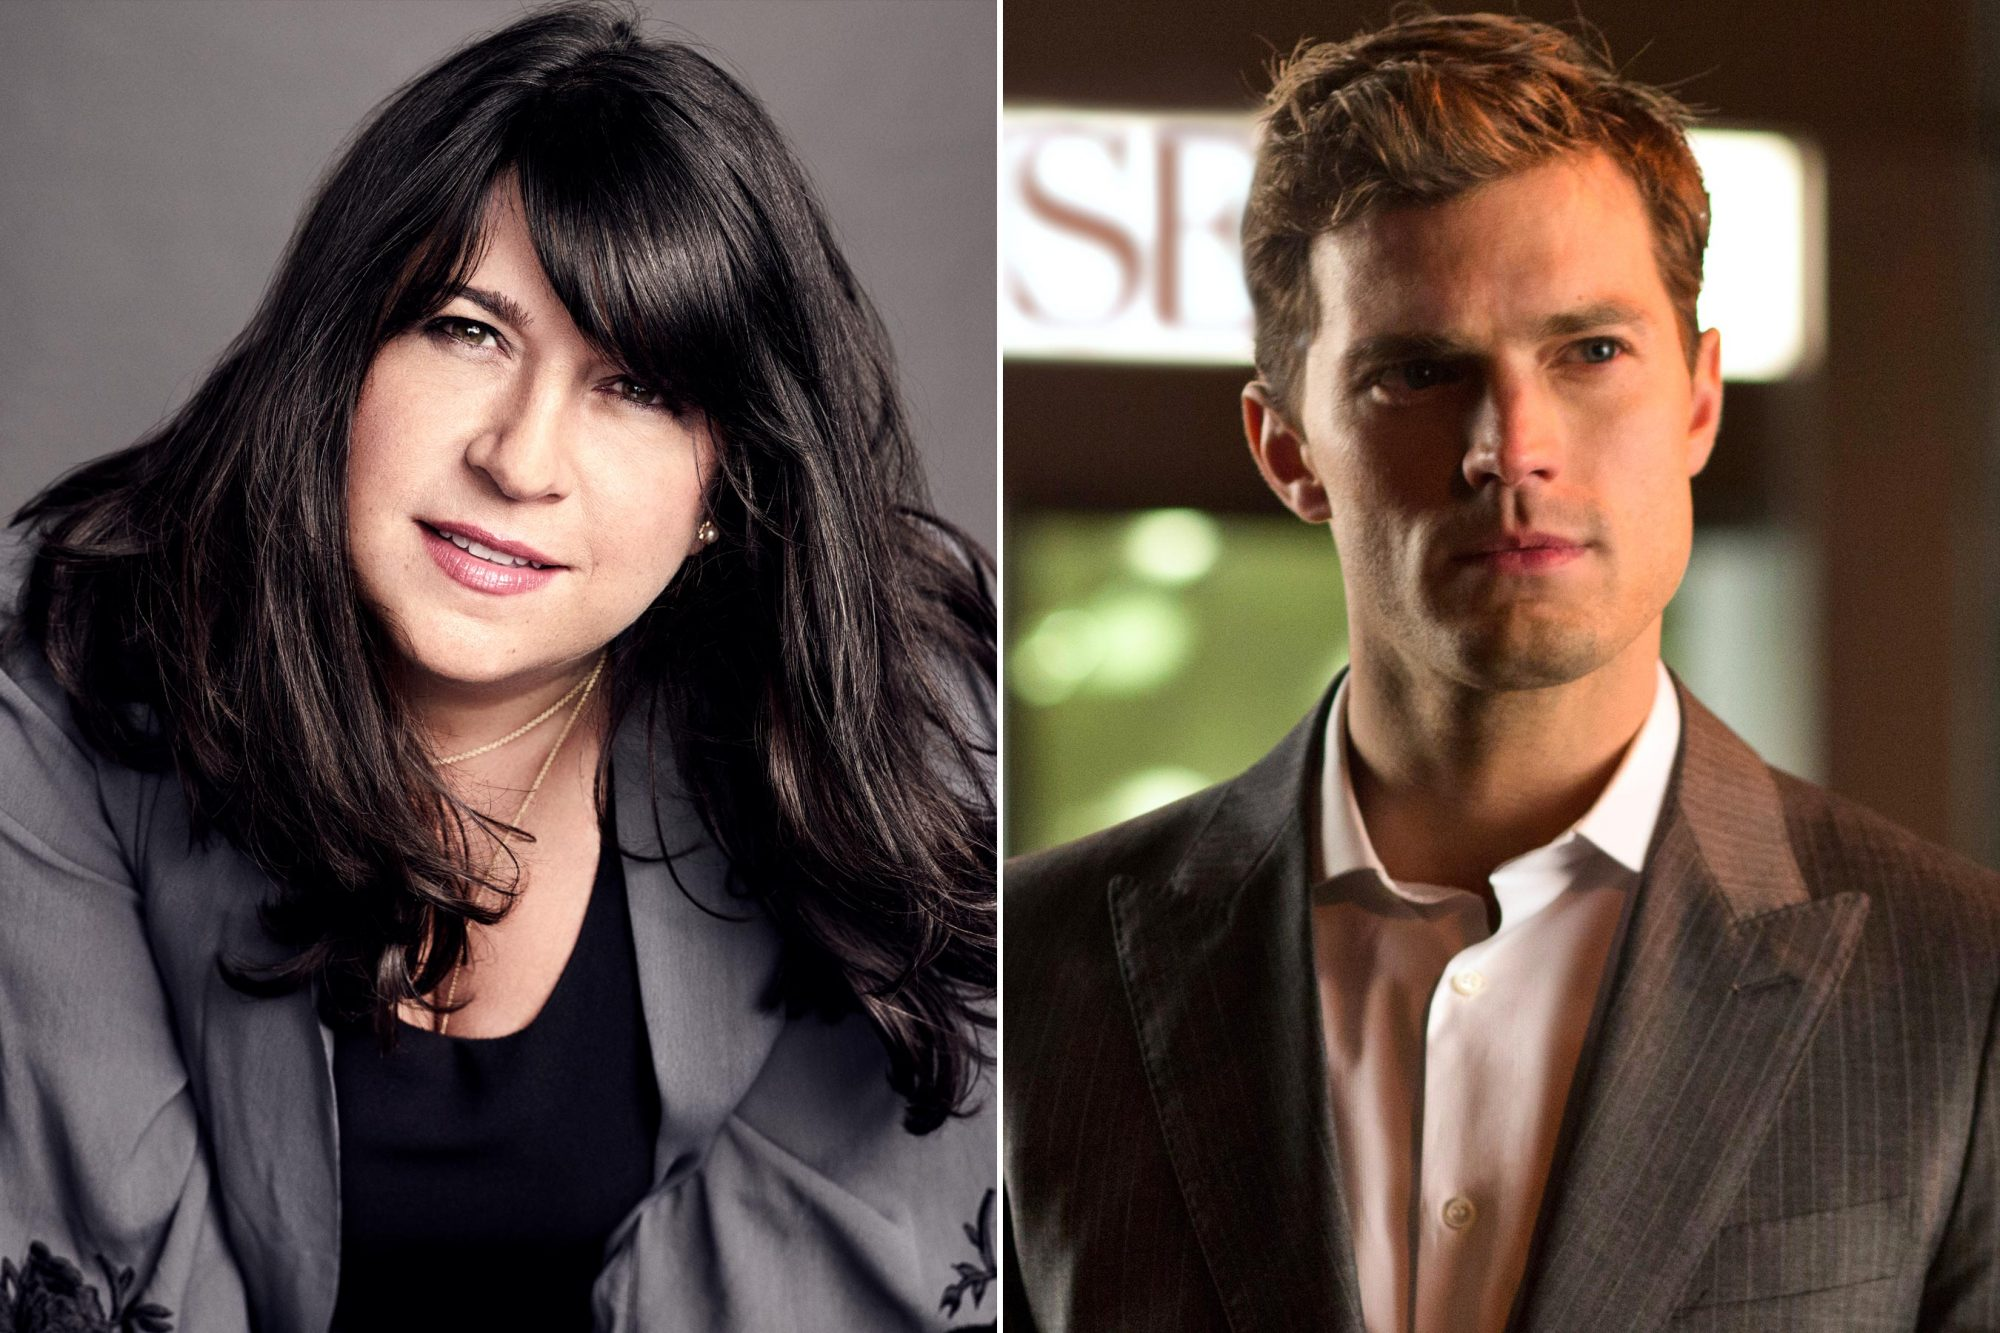 Fifty Shades Of Grey Author E L James On The Mister And Christian Grey Connection Ew Com